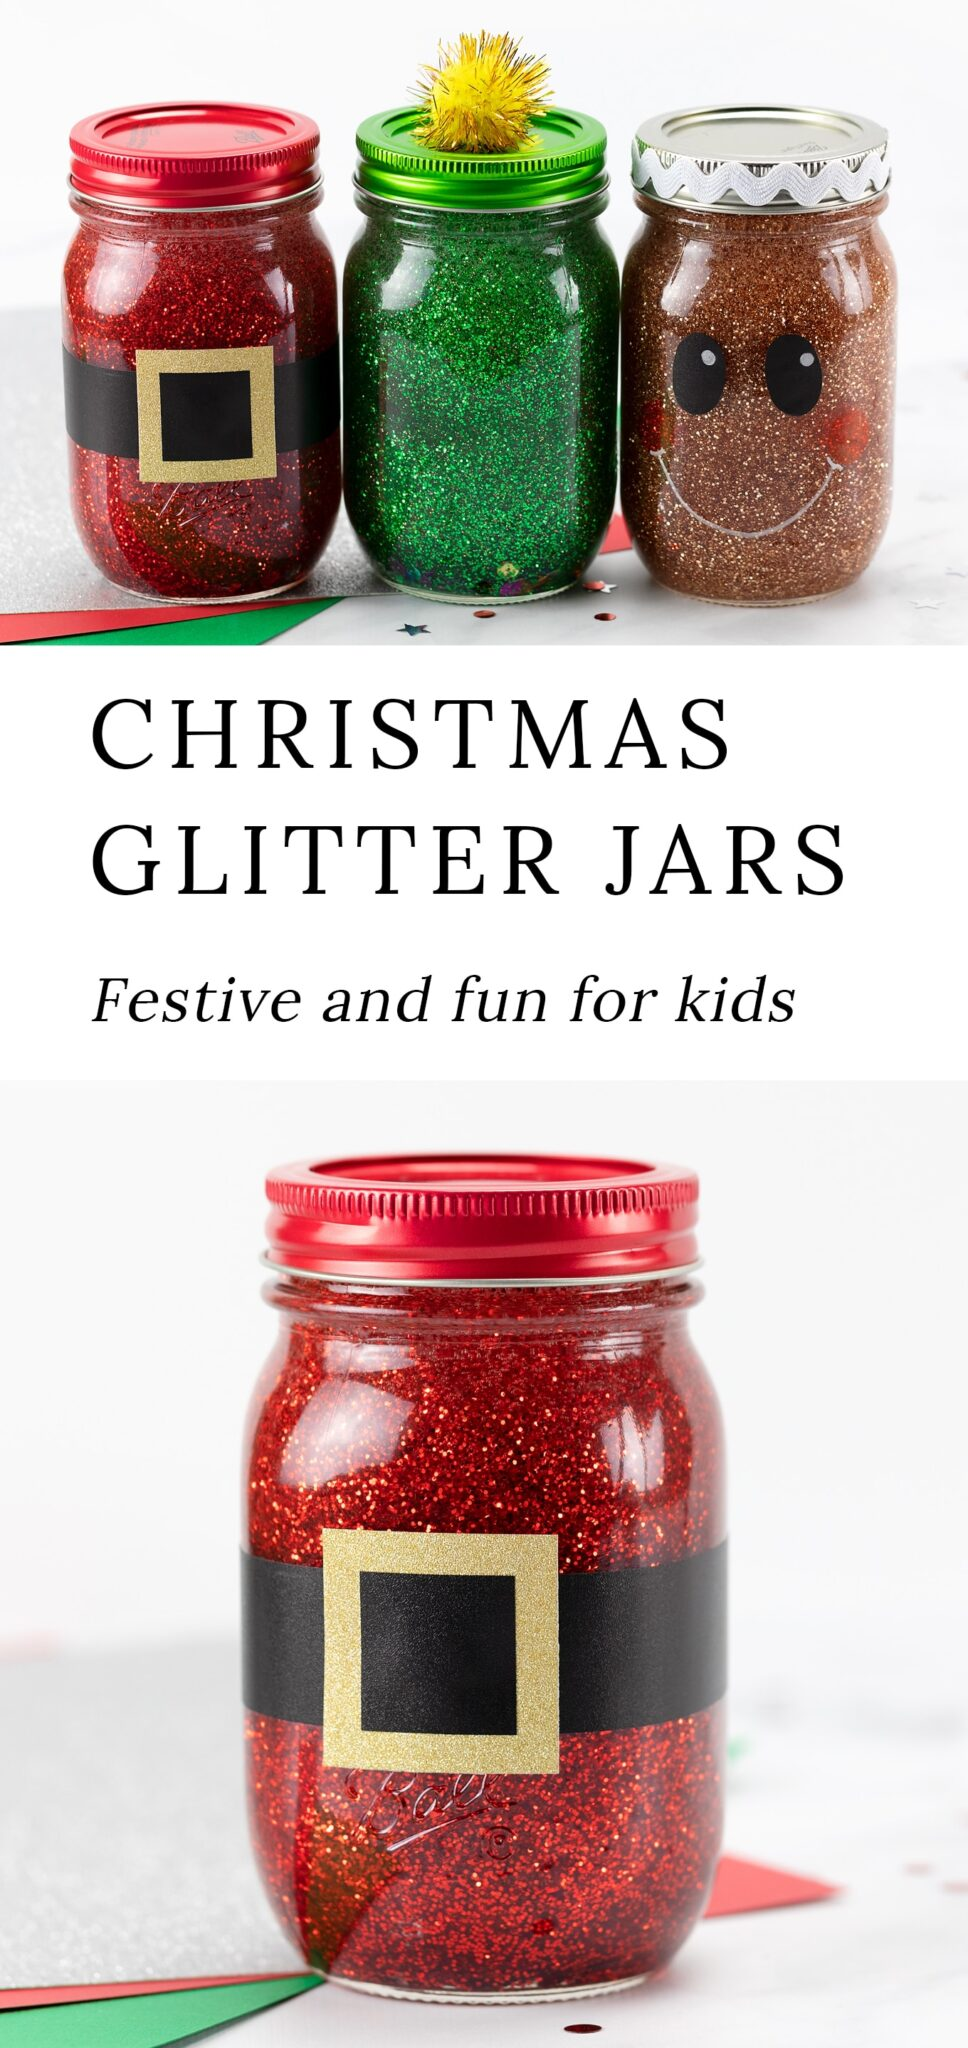 These Christmas Glitter Jars are easy and fun for kids to make at home or school. They are a great stocking stuffer or Secret Santa gift! #glitterjars #christmas #kidscrafts via @firefliesandmudpies